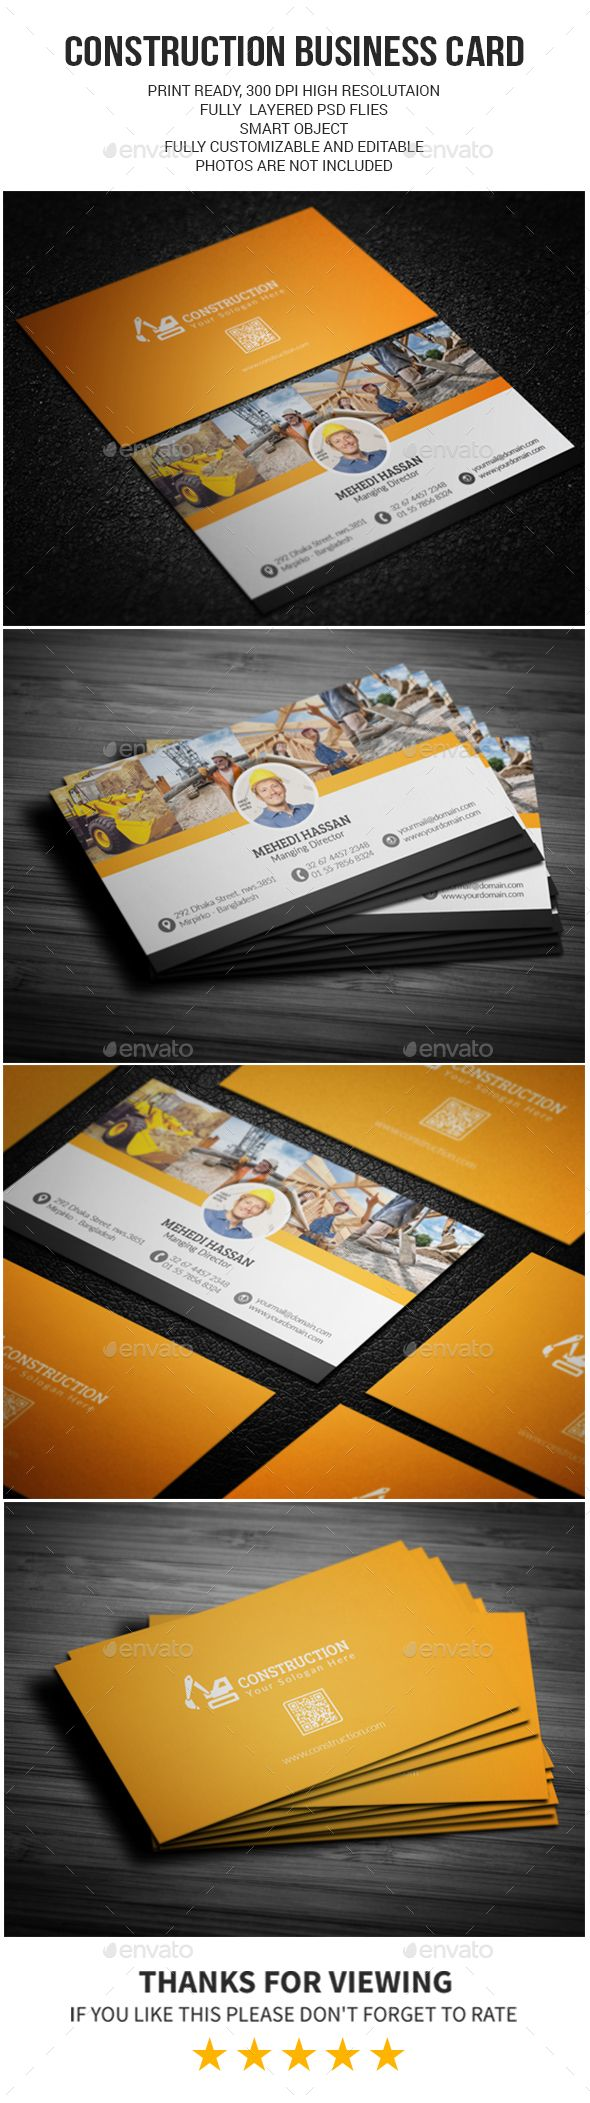 24 best remax business cards images on pinterest real estate construction business card colourmoves